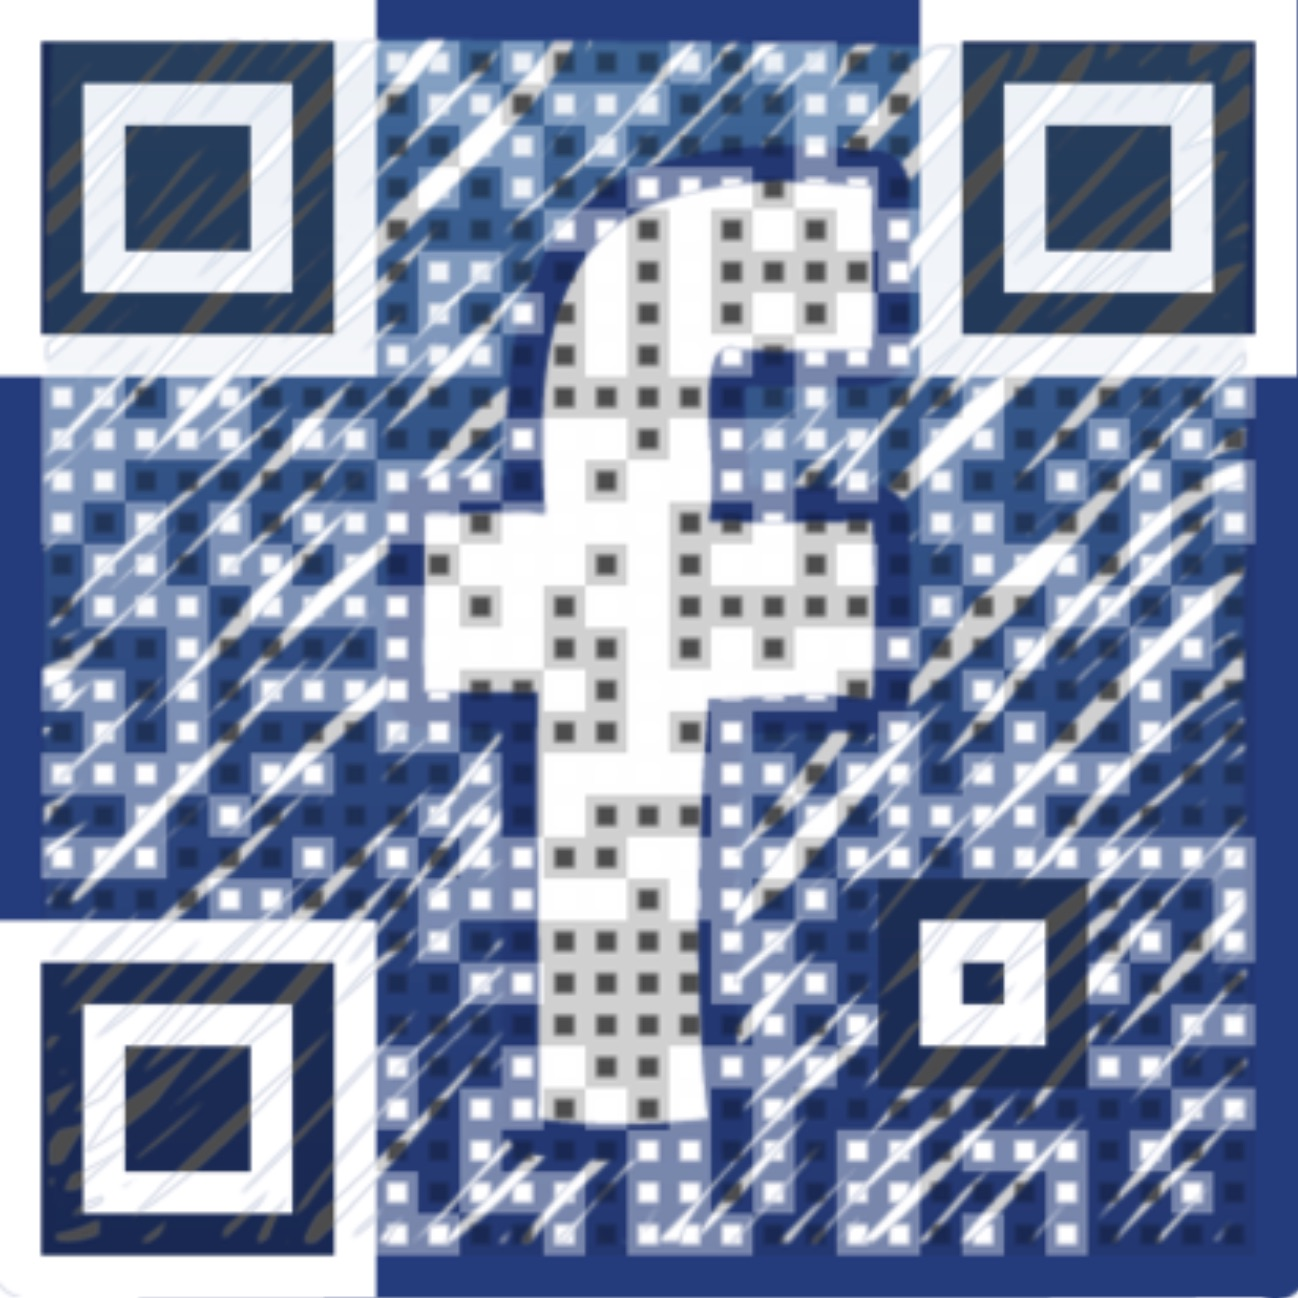 Nik S Learning Technology Blog 20 Things You Can Do With Qr Codes In Your School